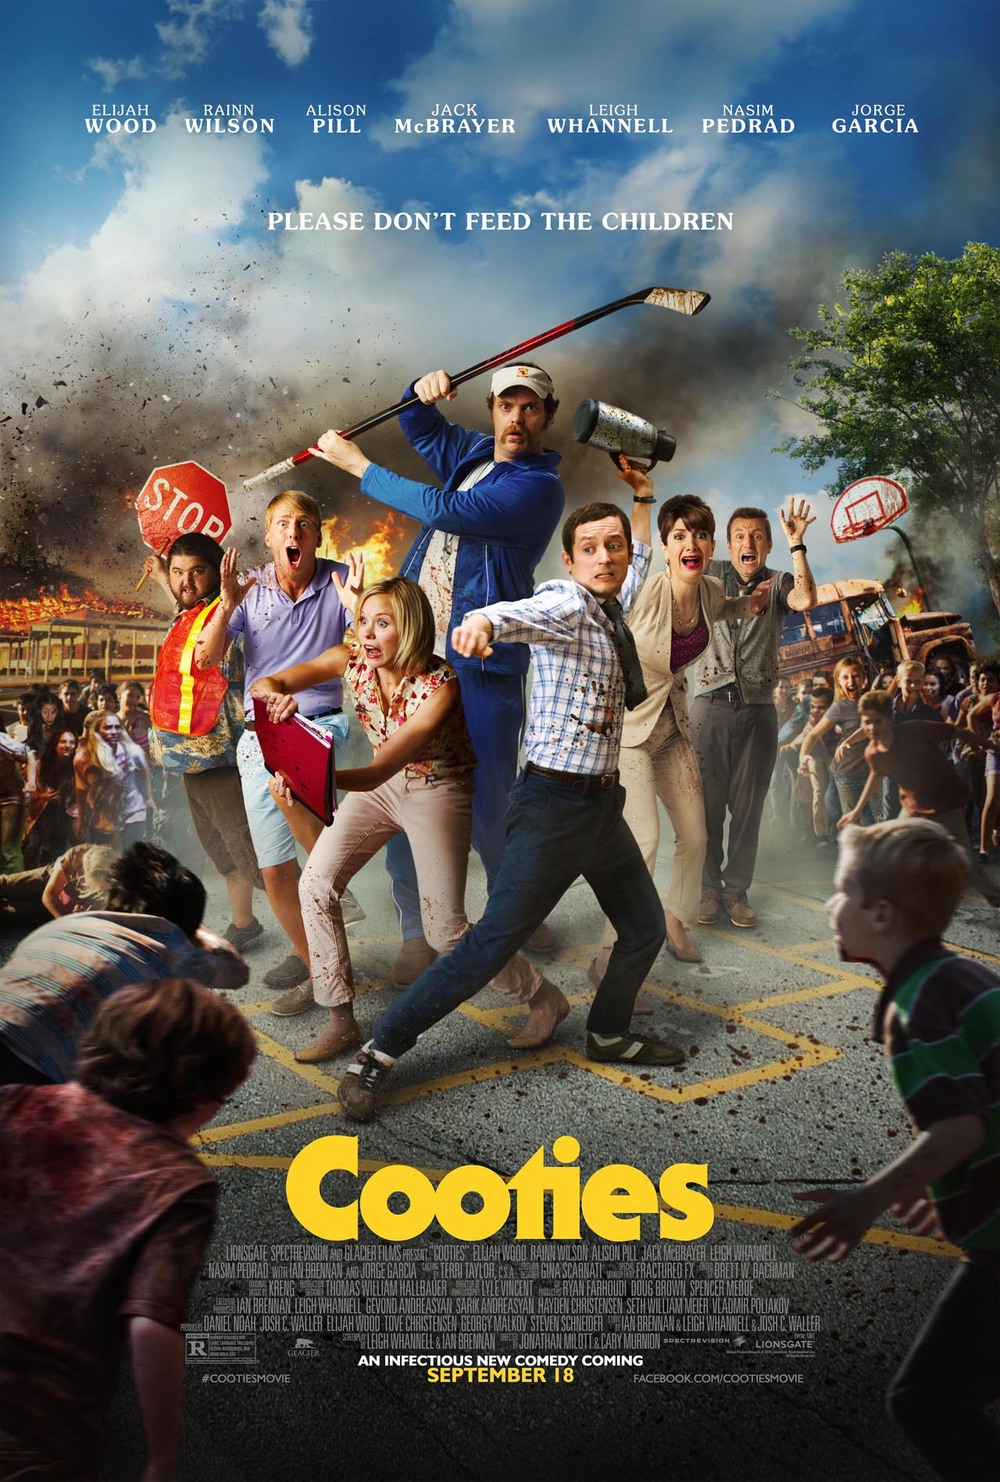 elijah-wood-fights-child-zombies-in-poster-for-cooties